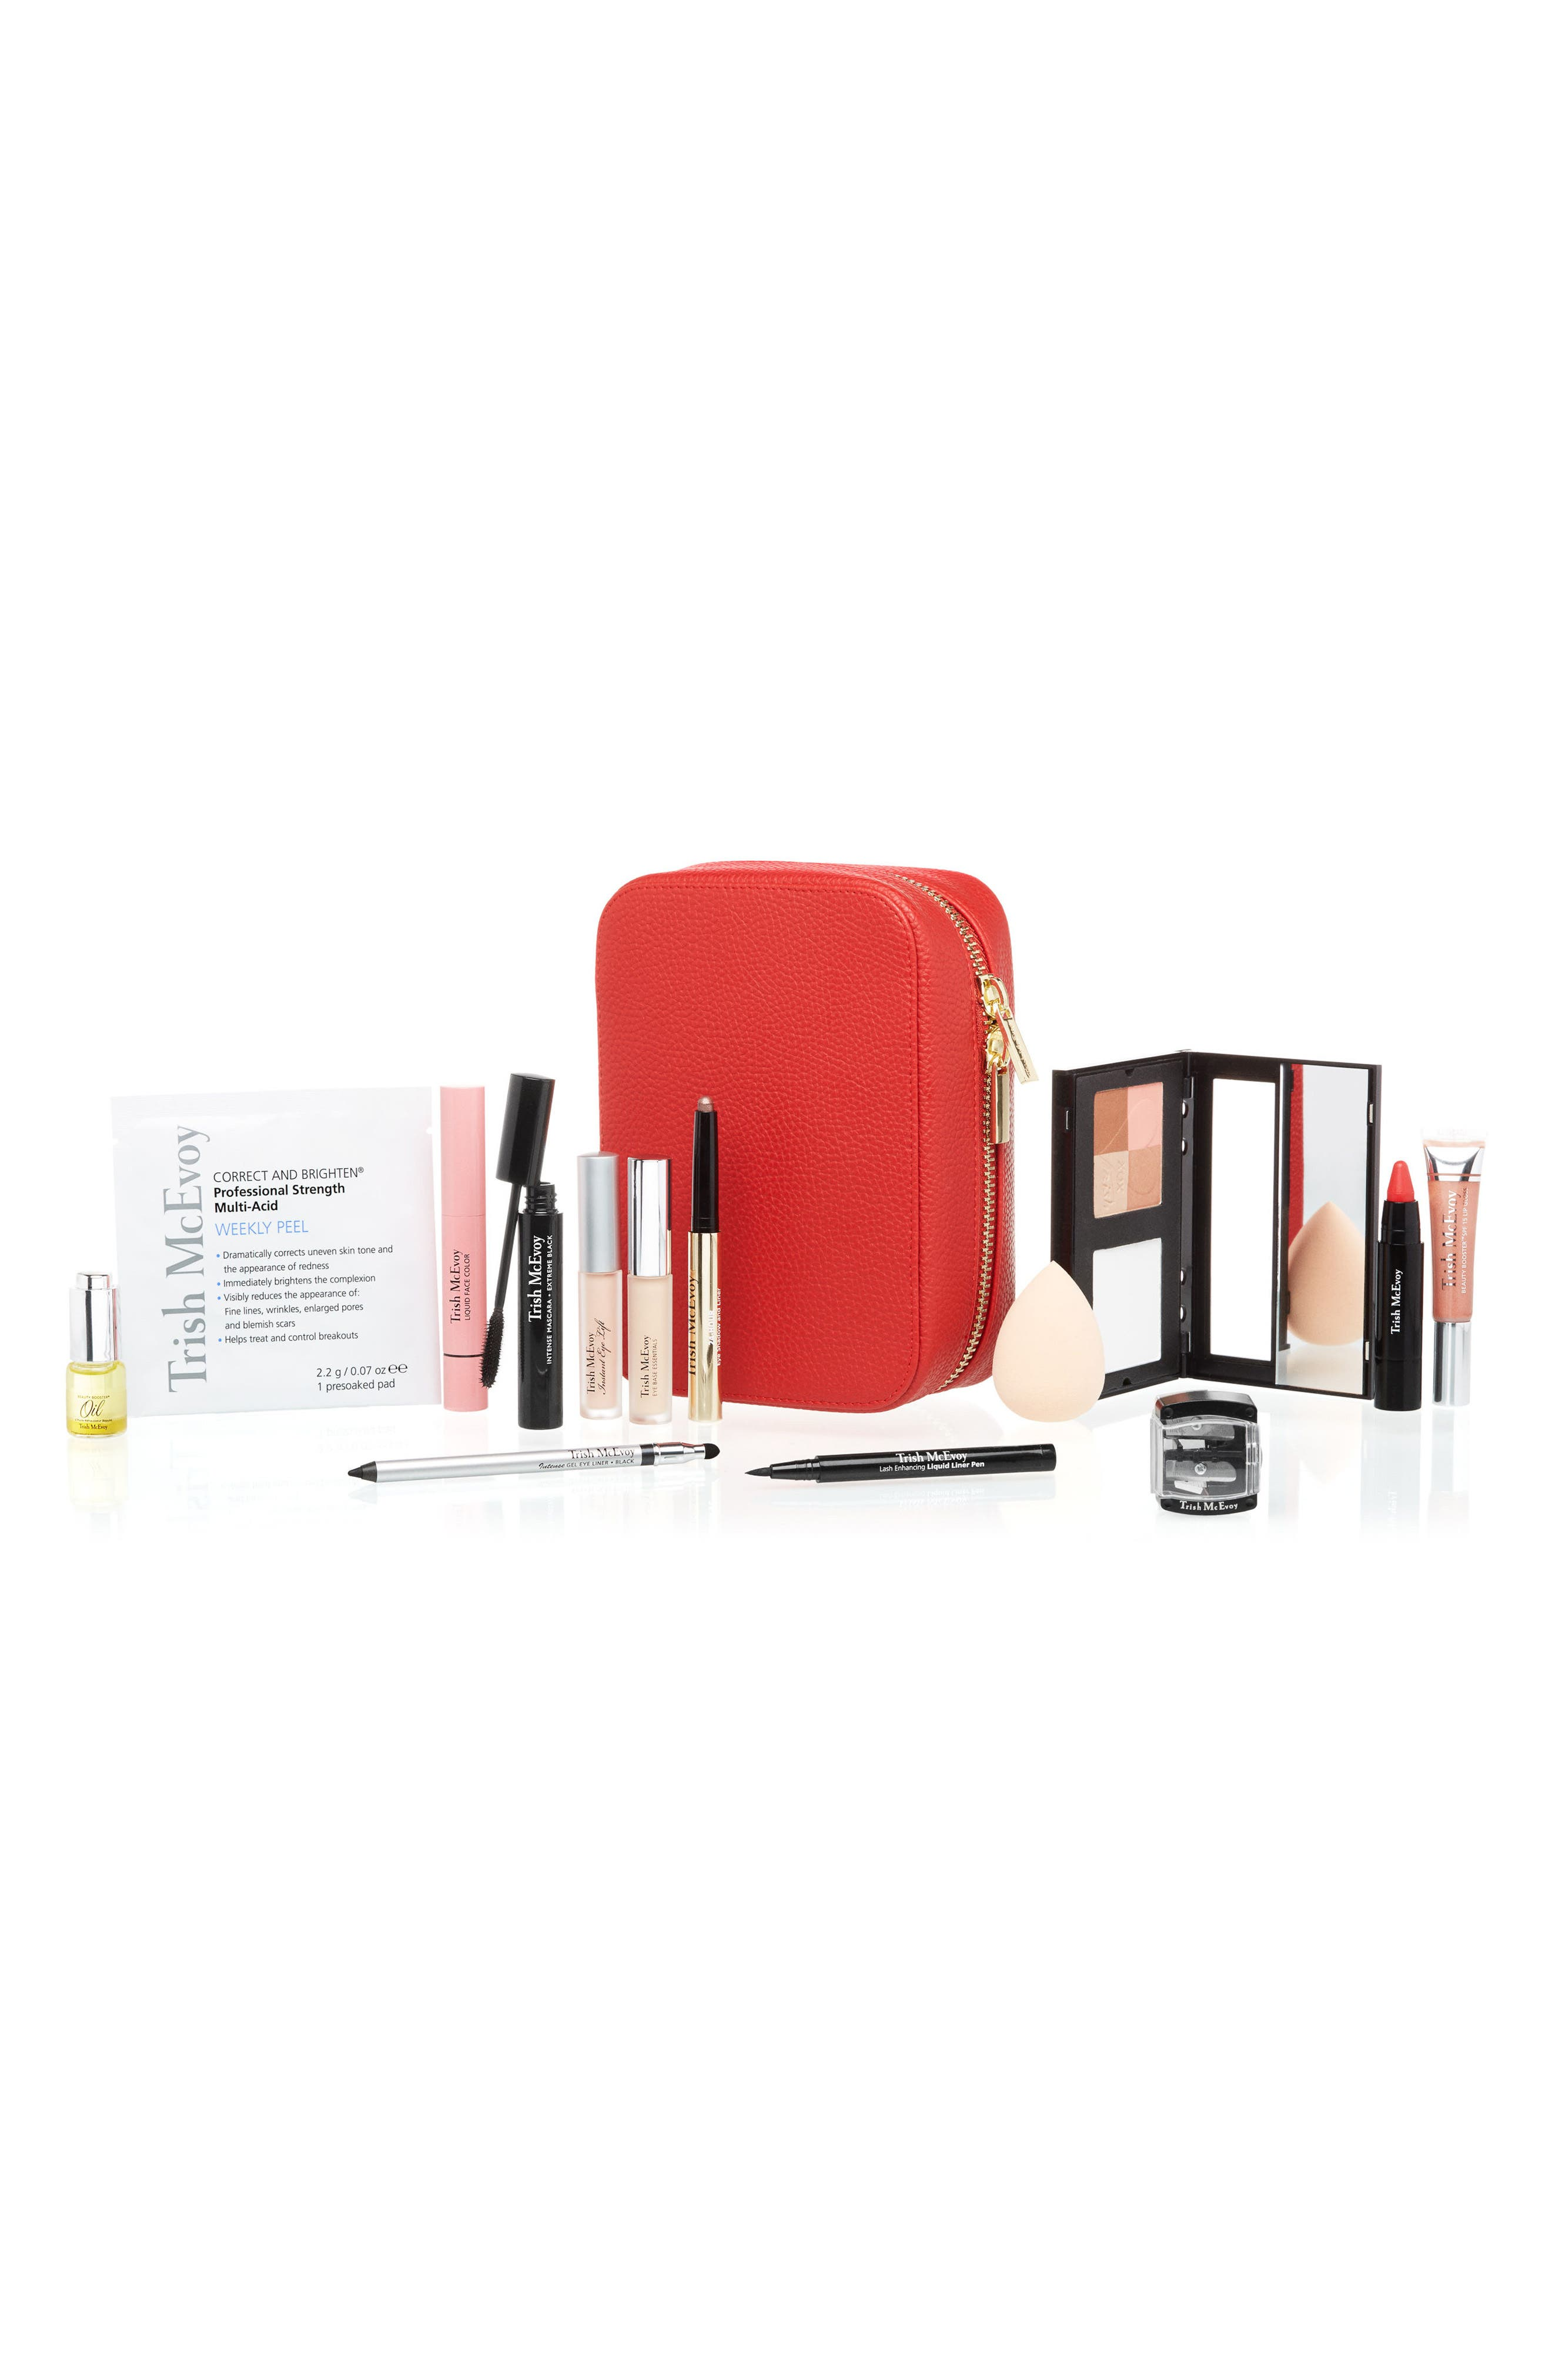 Trish McEvoy The Power of Makeup® Confidence Collection ($490.50 Value)